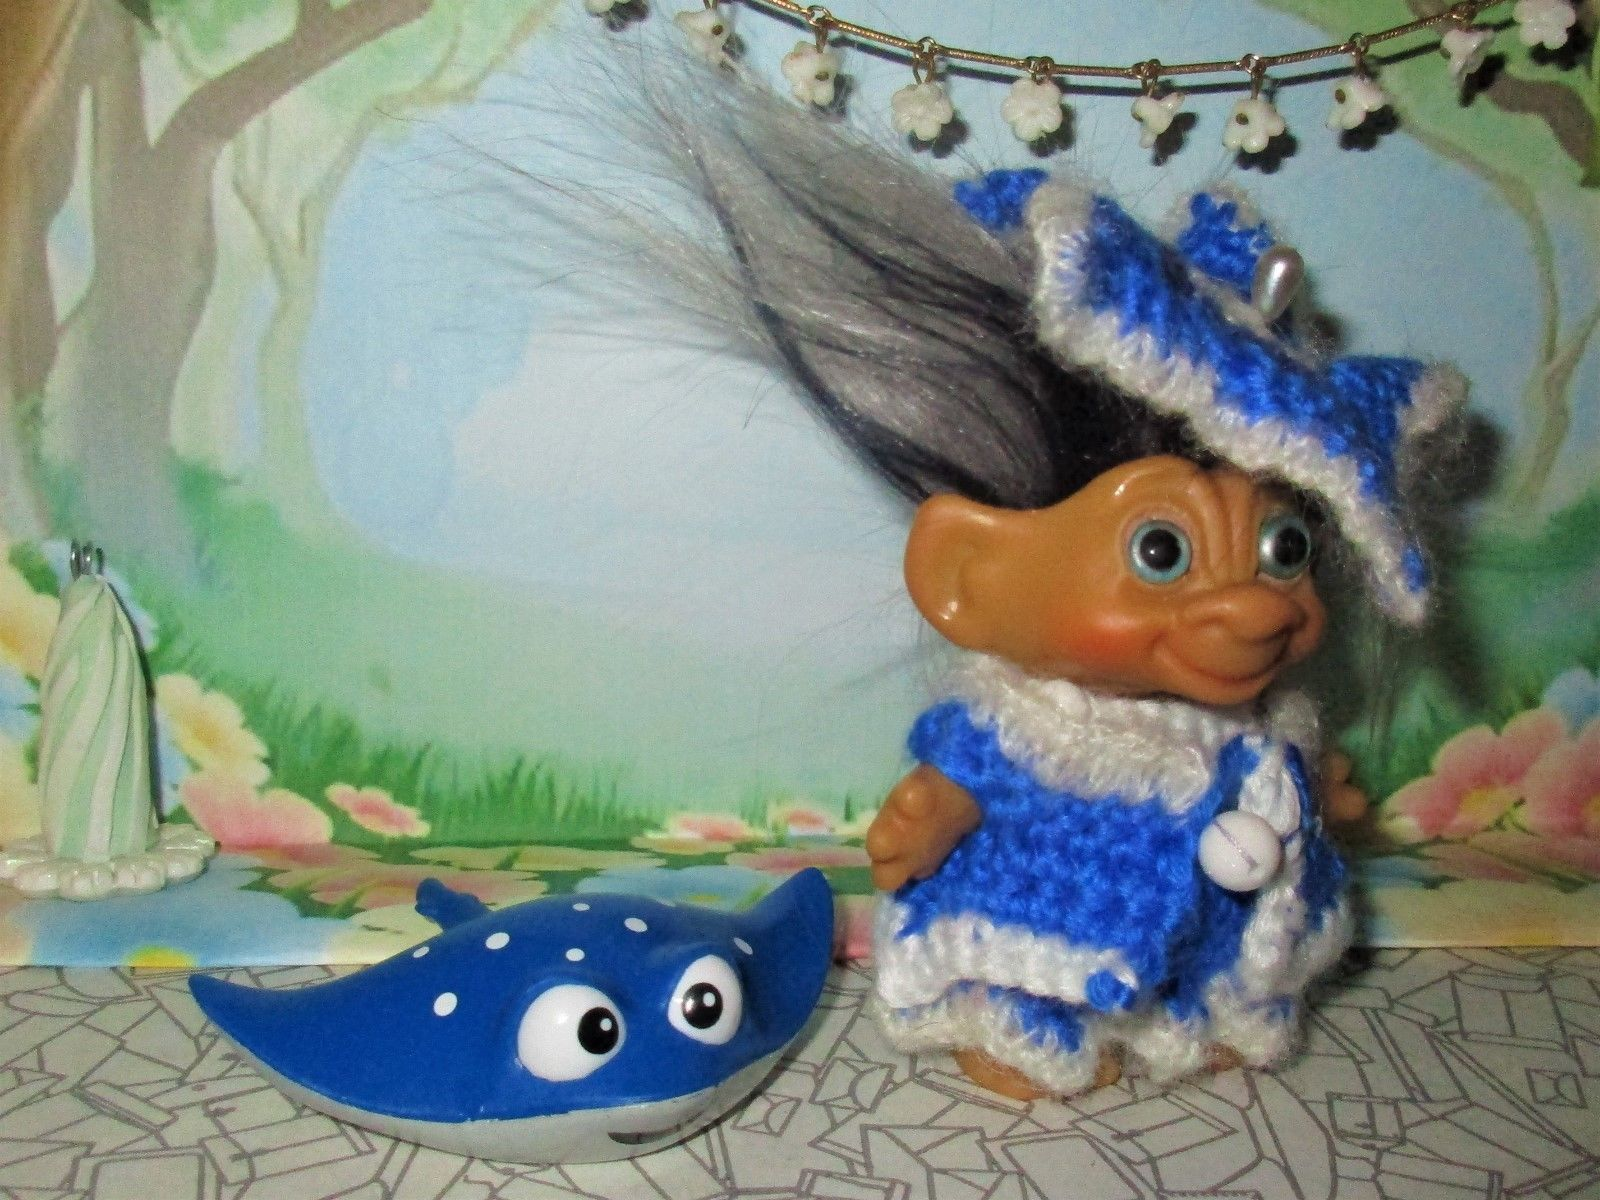 Vintage TROLL +STINGRAY PET 3in crochet dam doll 60's dress coat fascinator blue